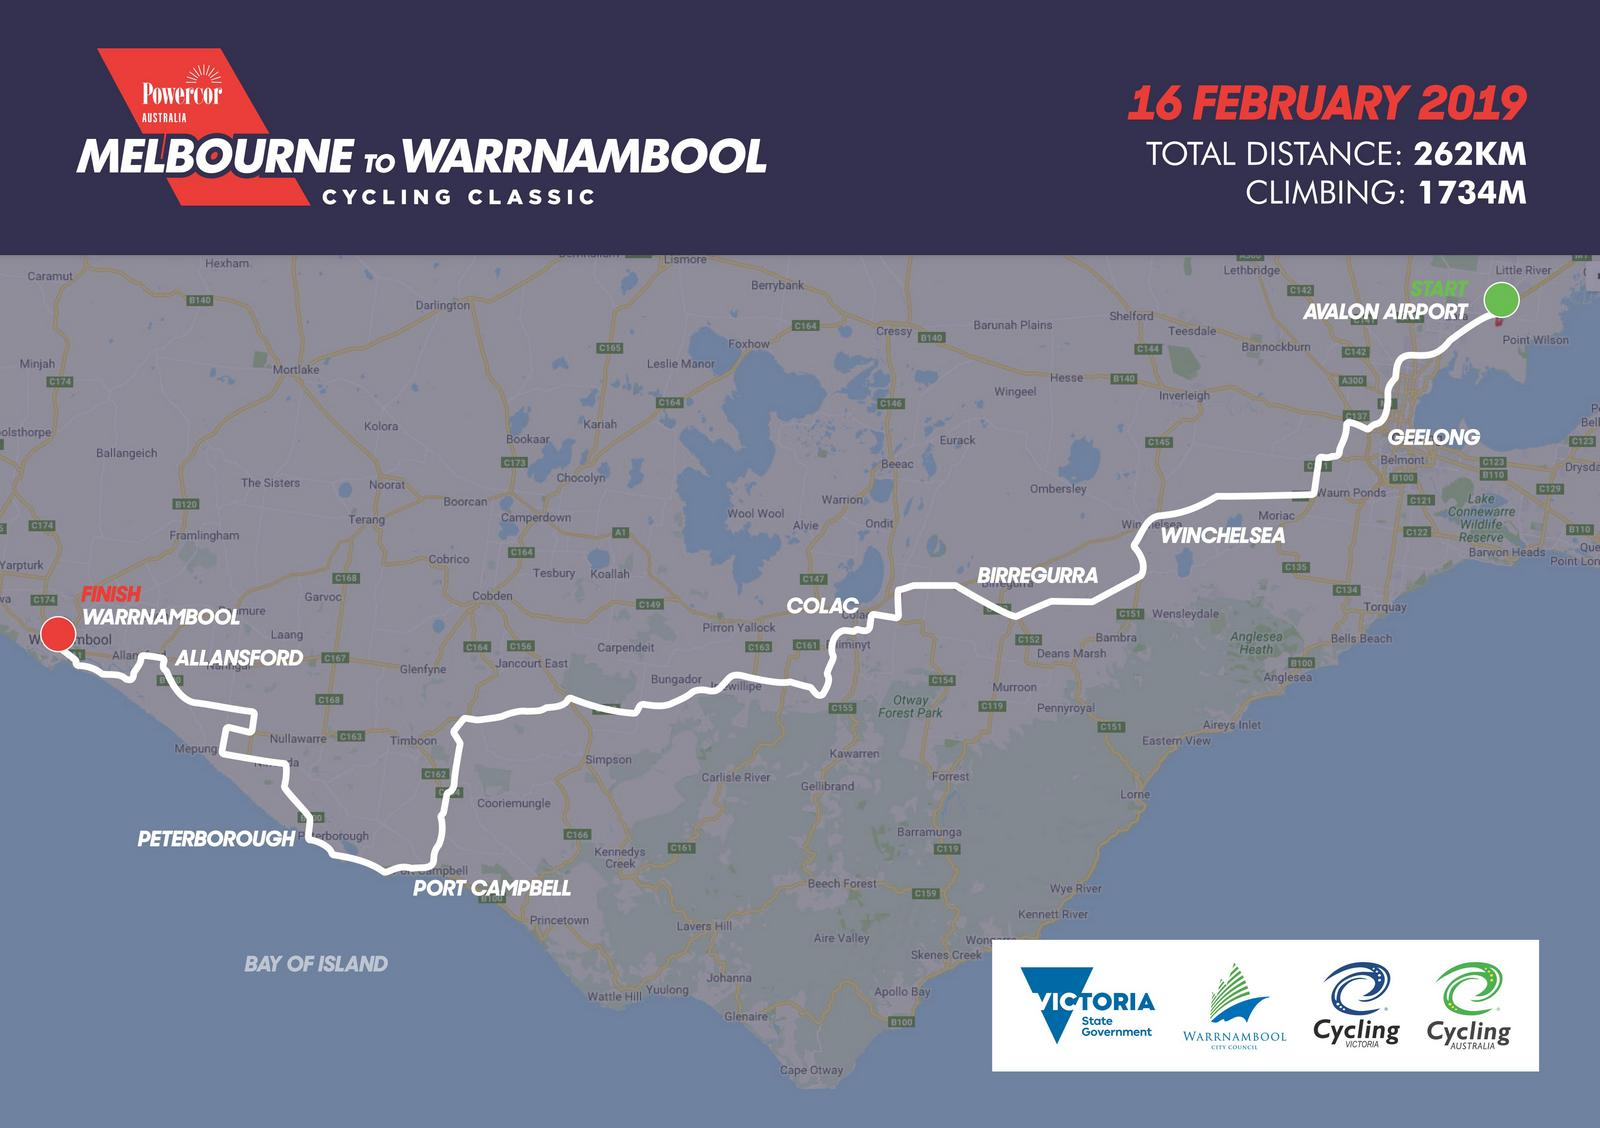 2019-melbourne-to-warrnambool-map.jpg